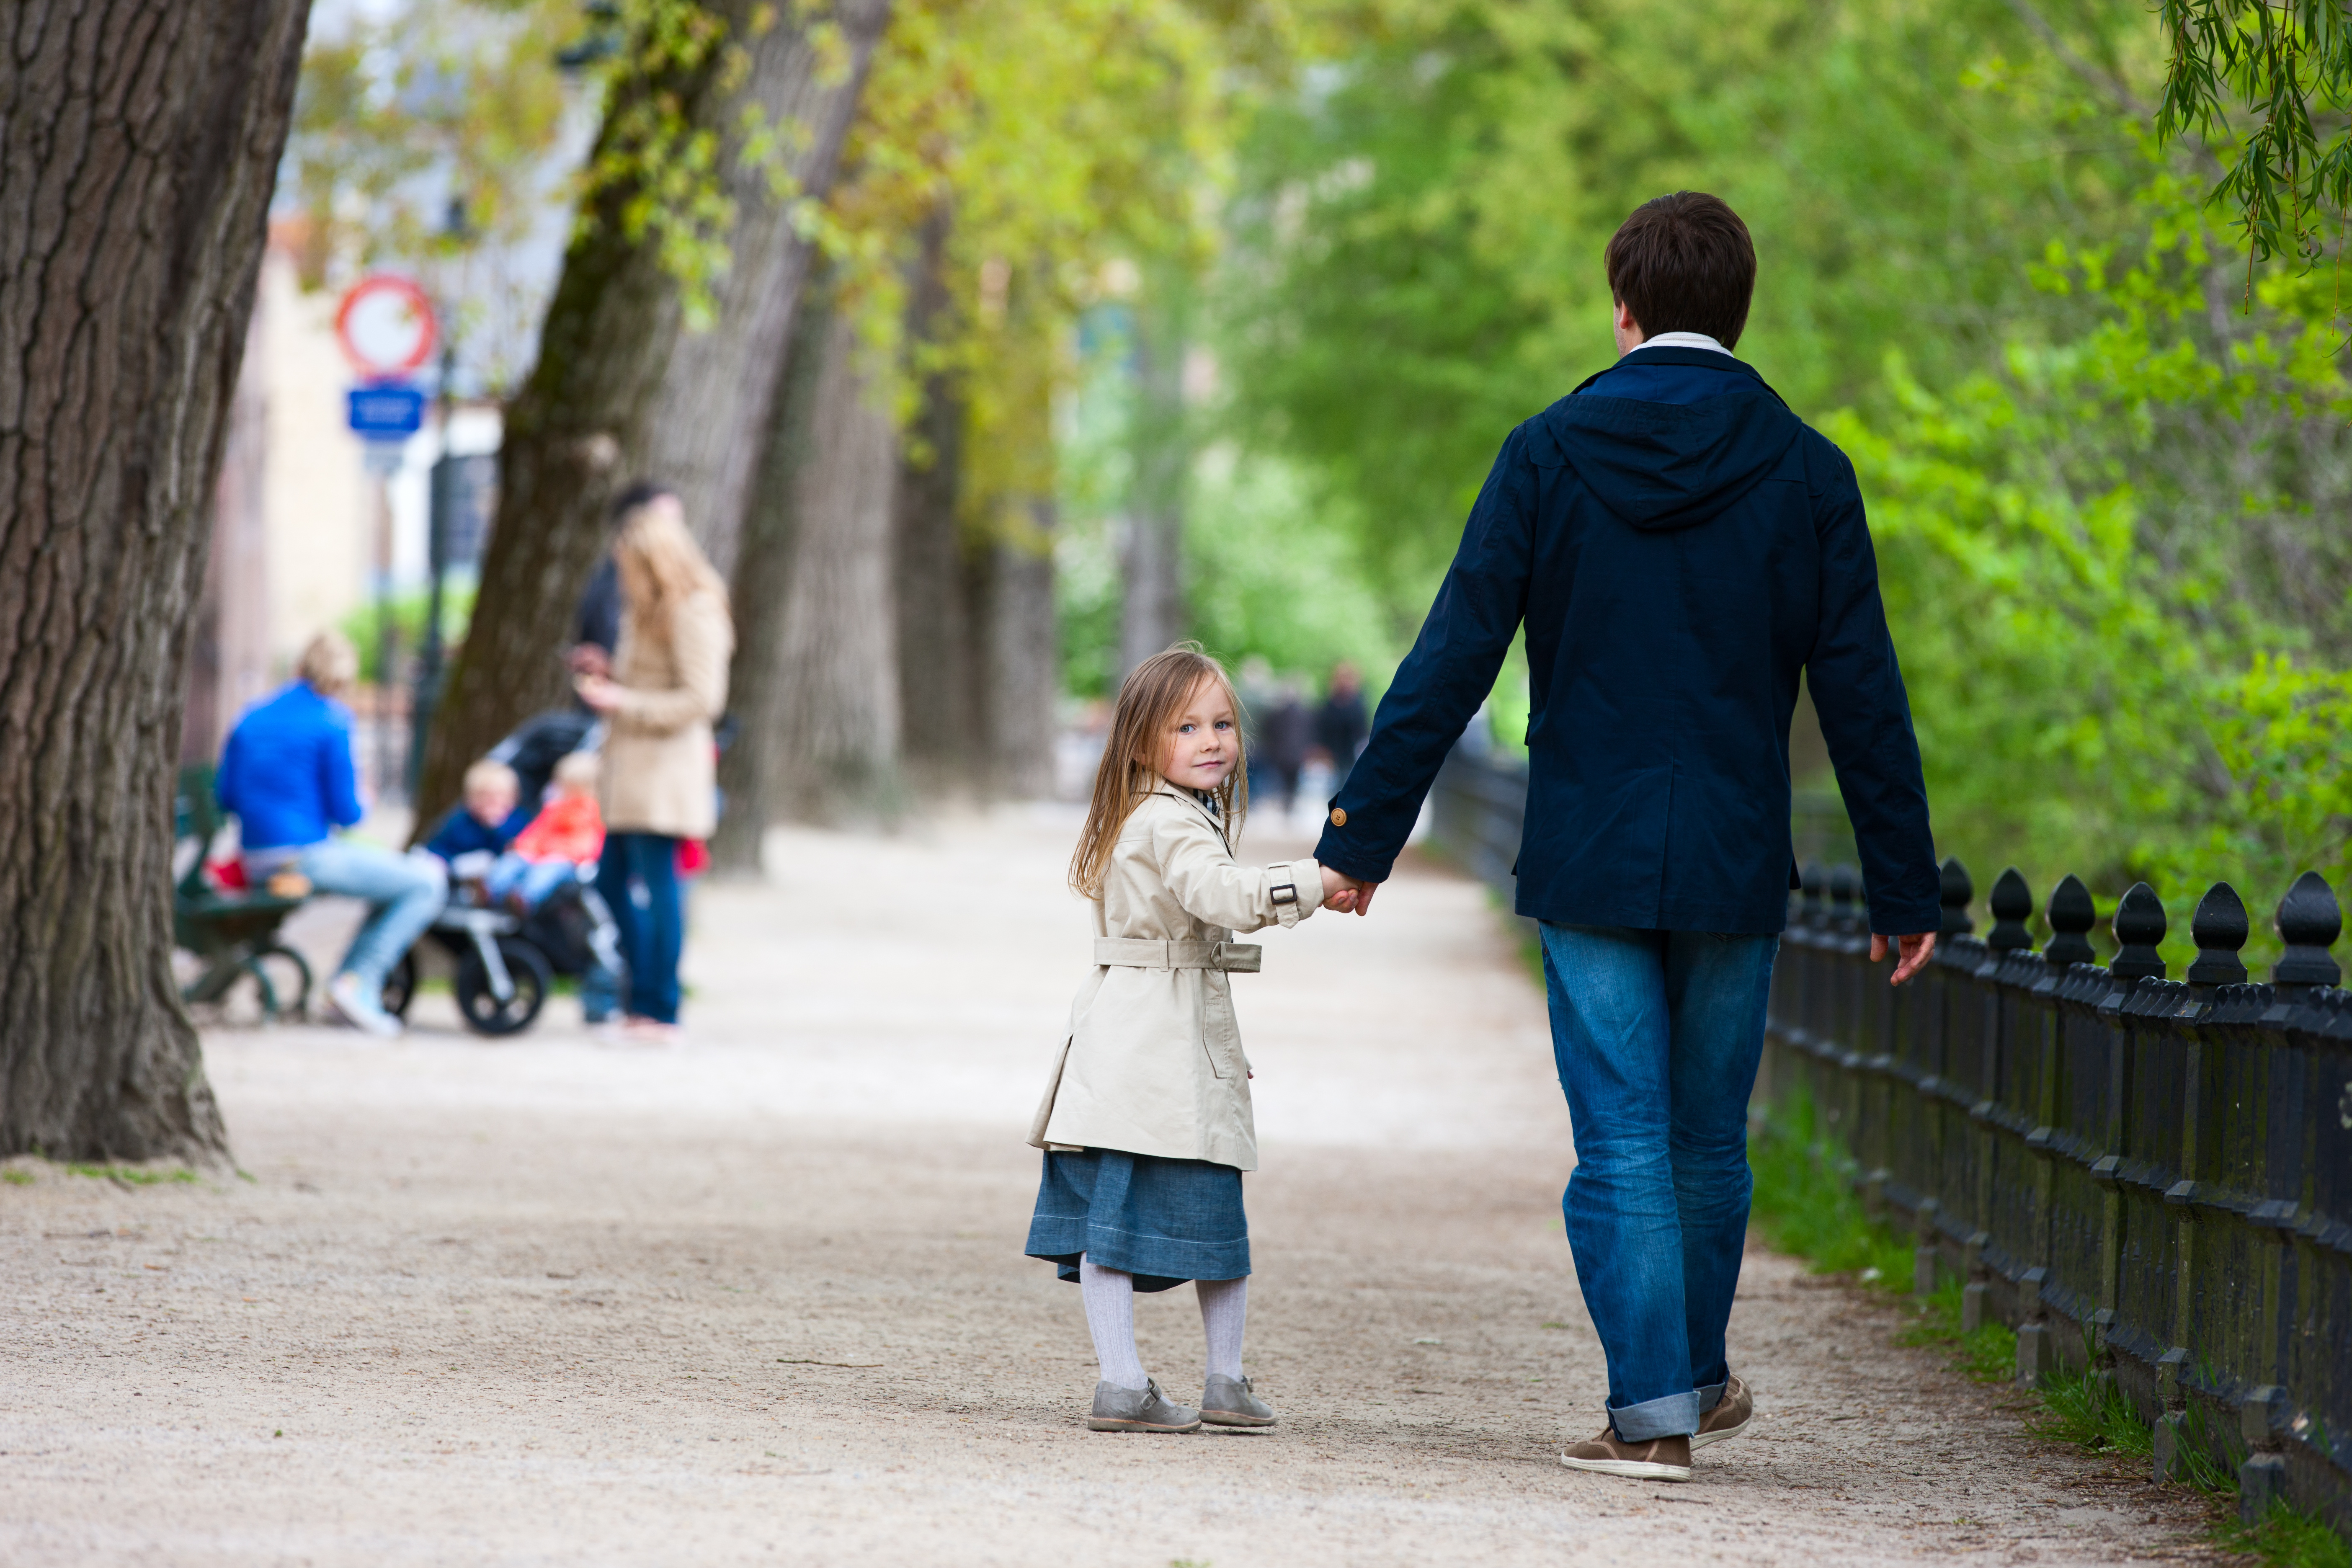 The Most Helpful Parenting Articles of 2014